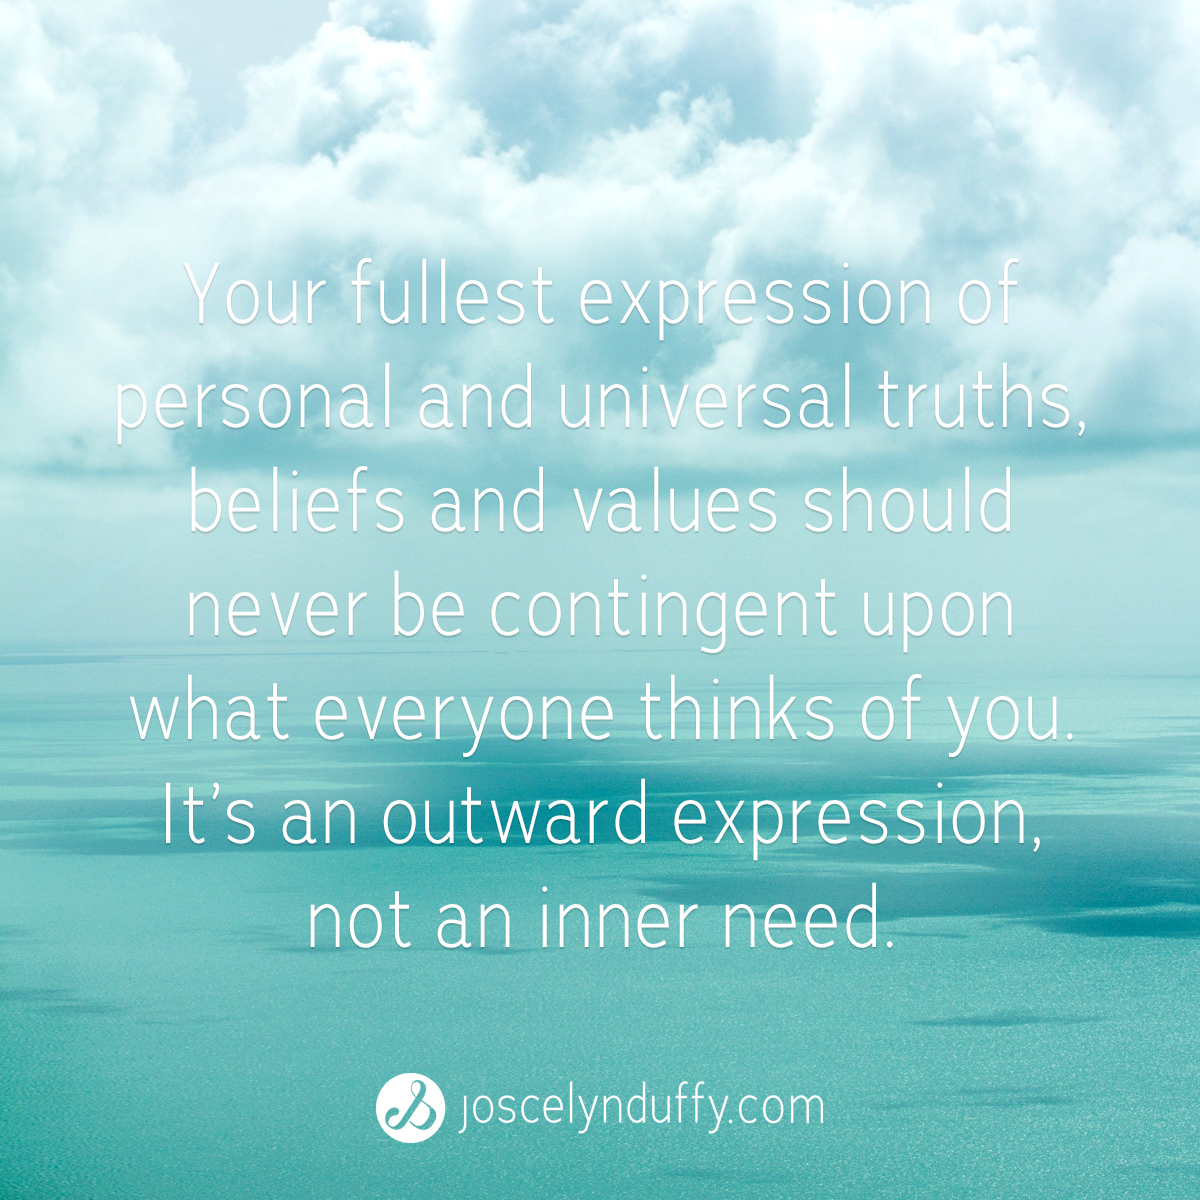 Joscelyn Duffy_quote_Self-expression should never be contingent upon what others think_March 13